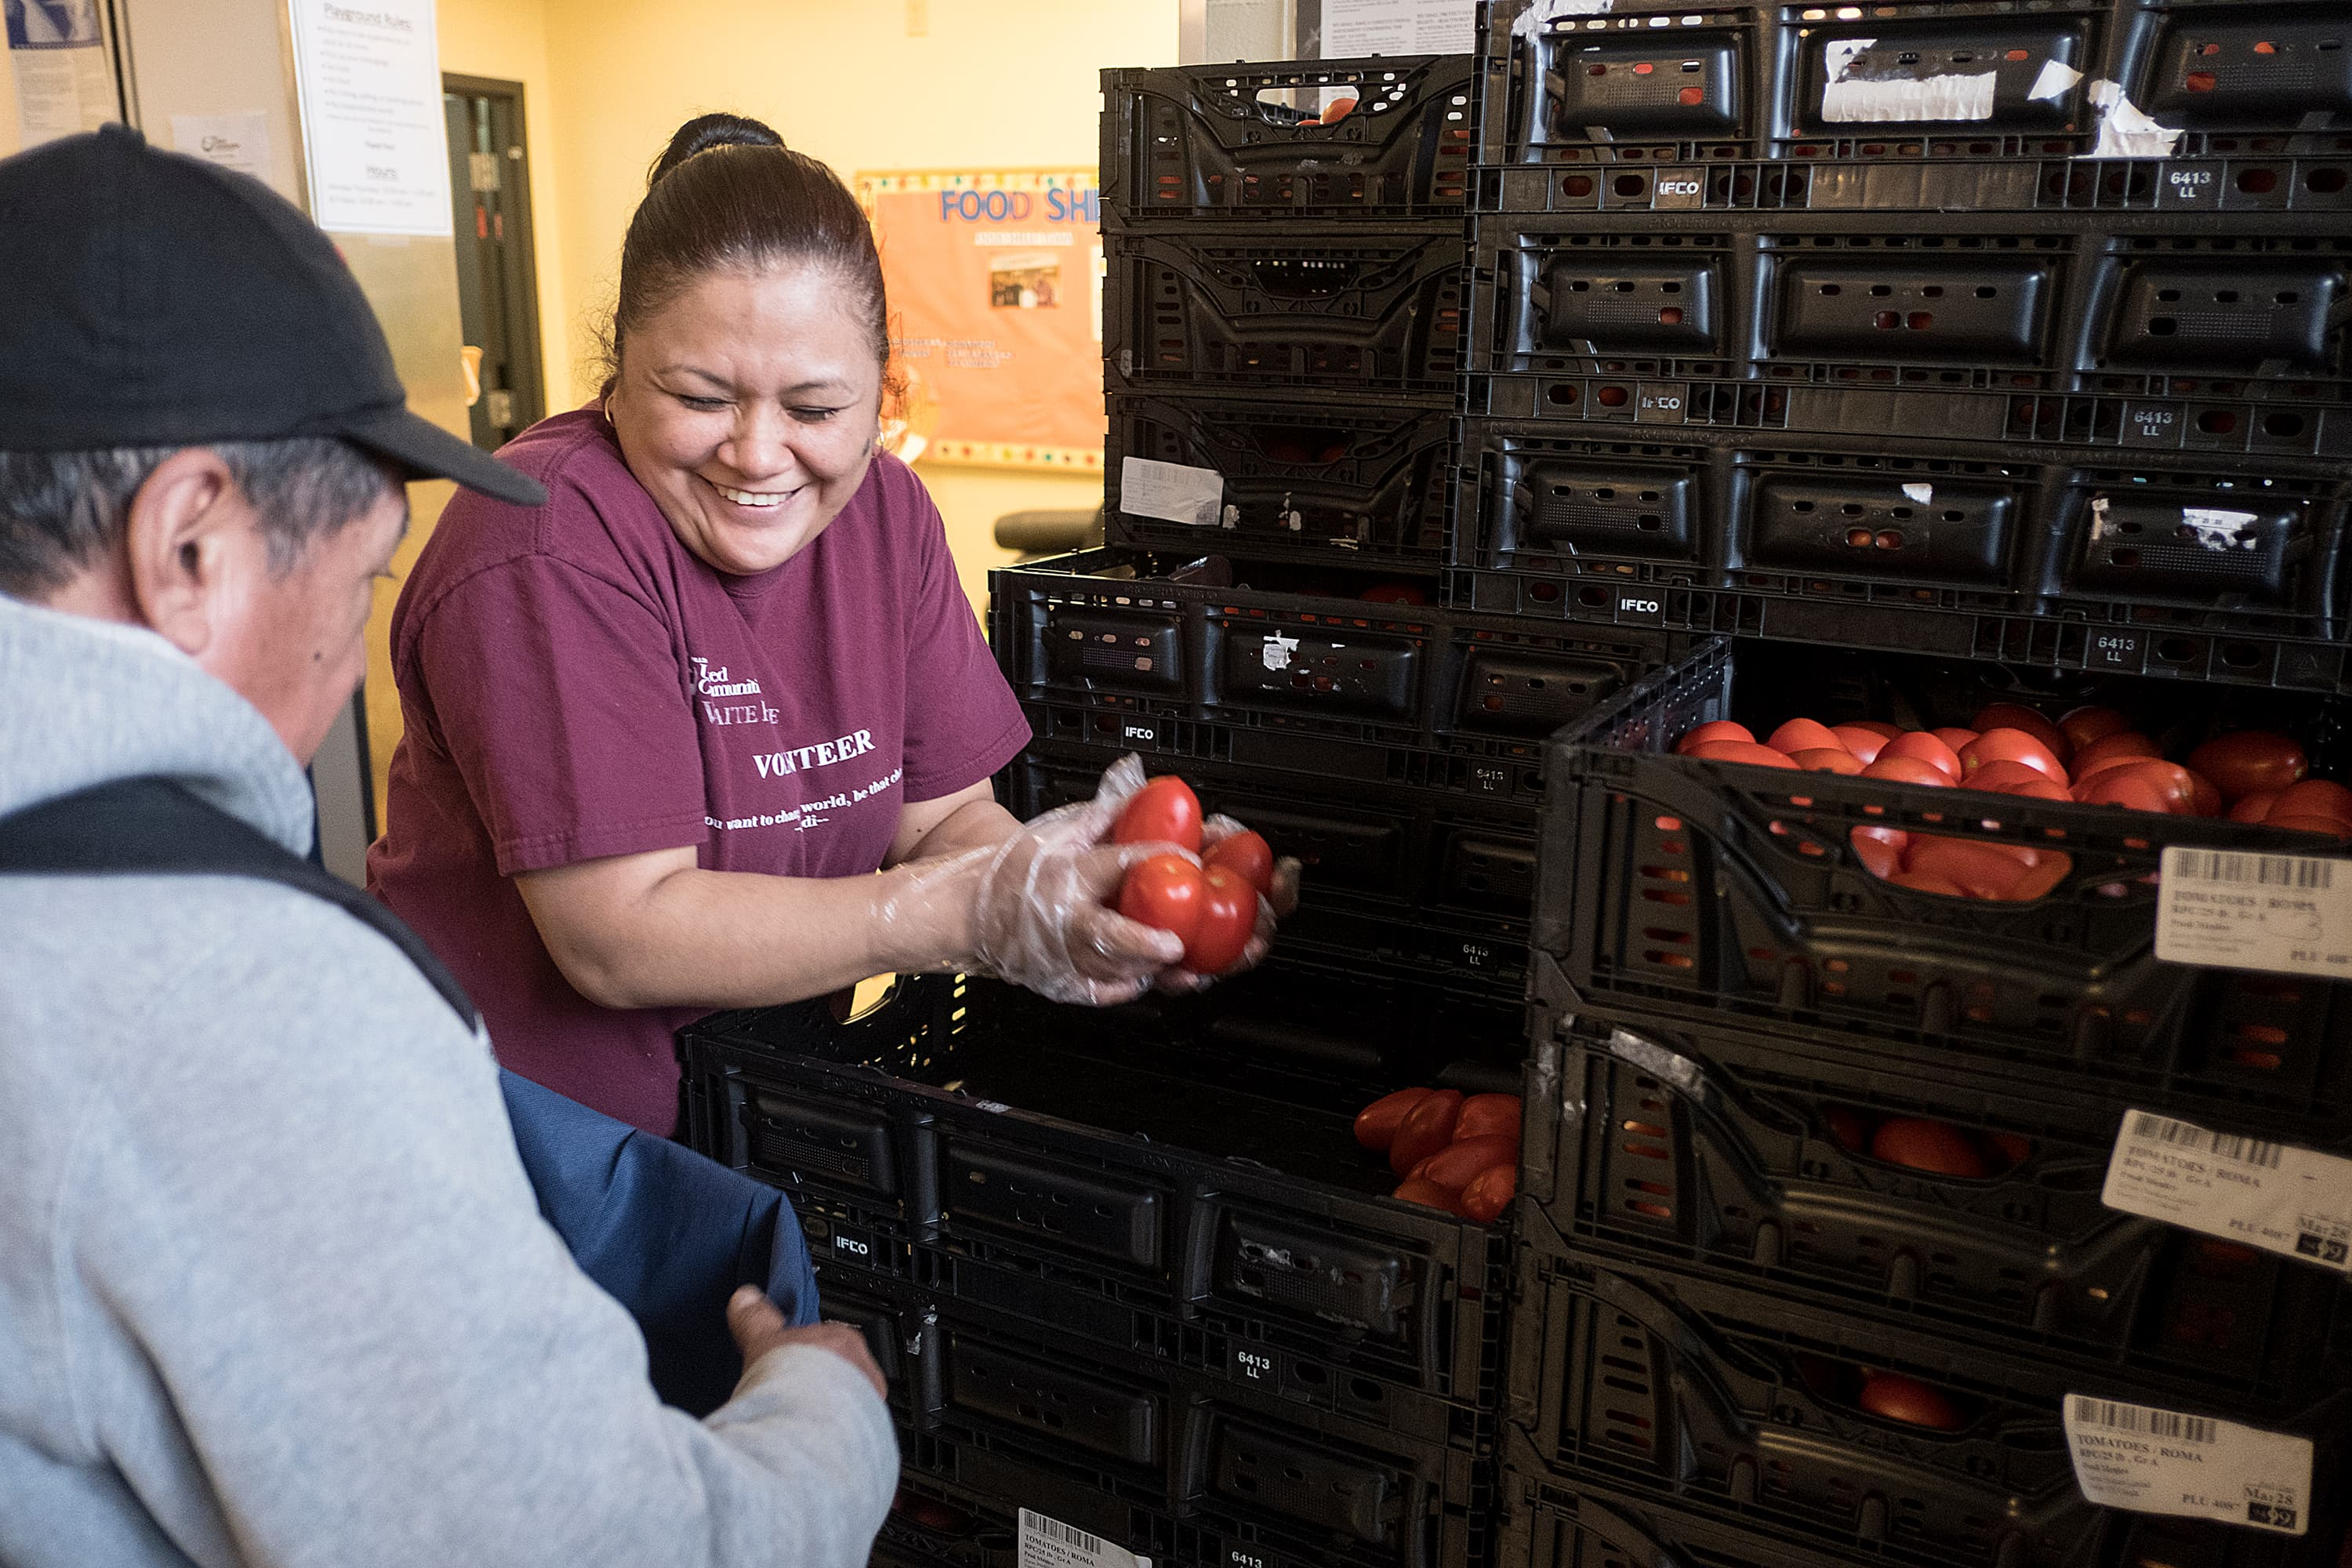 Woman smiling helping distribute tomatoes to someone at a food shelf